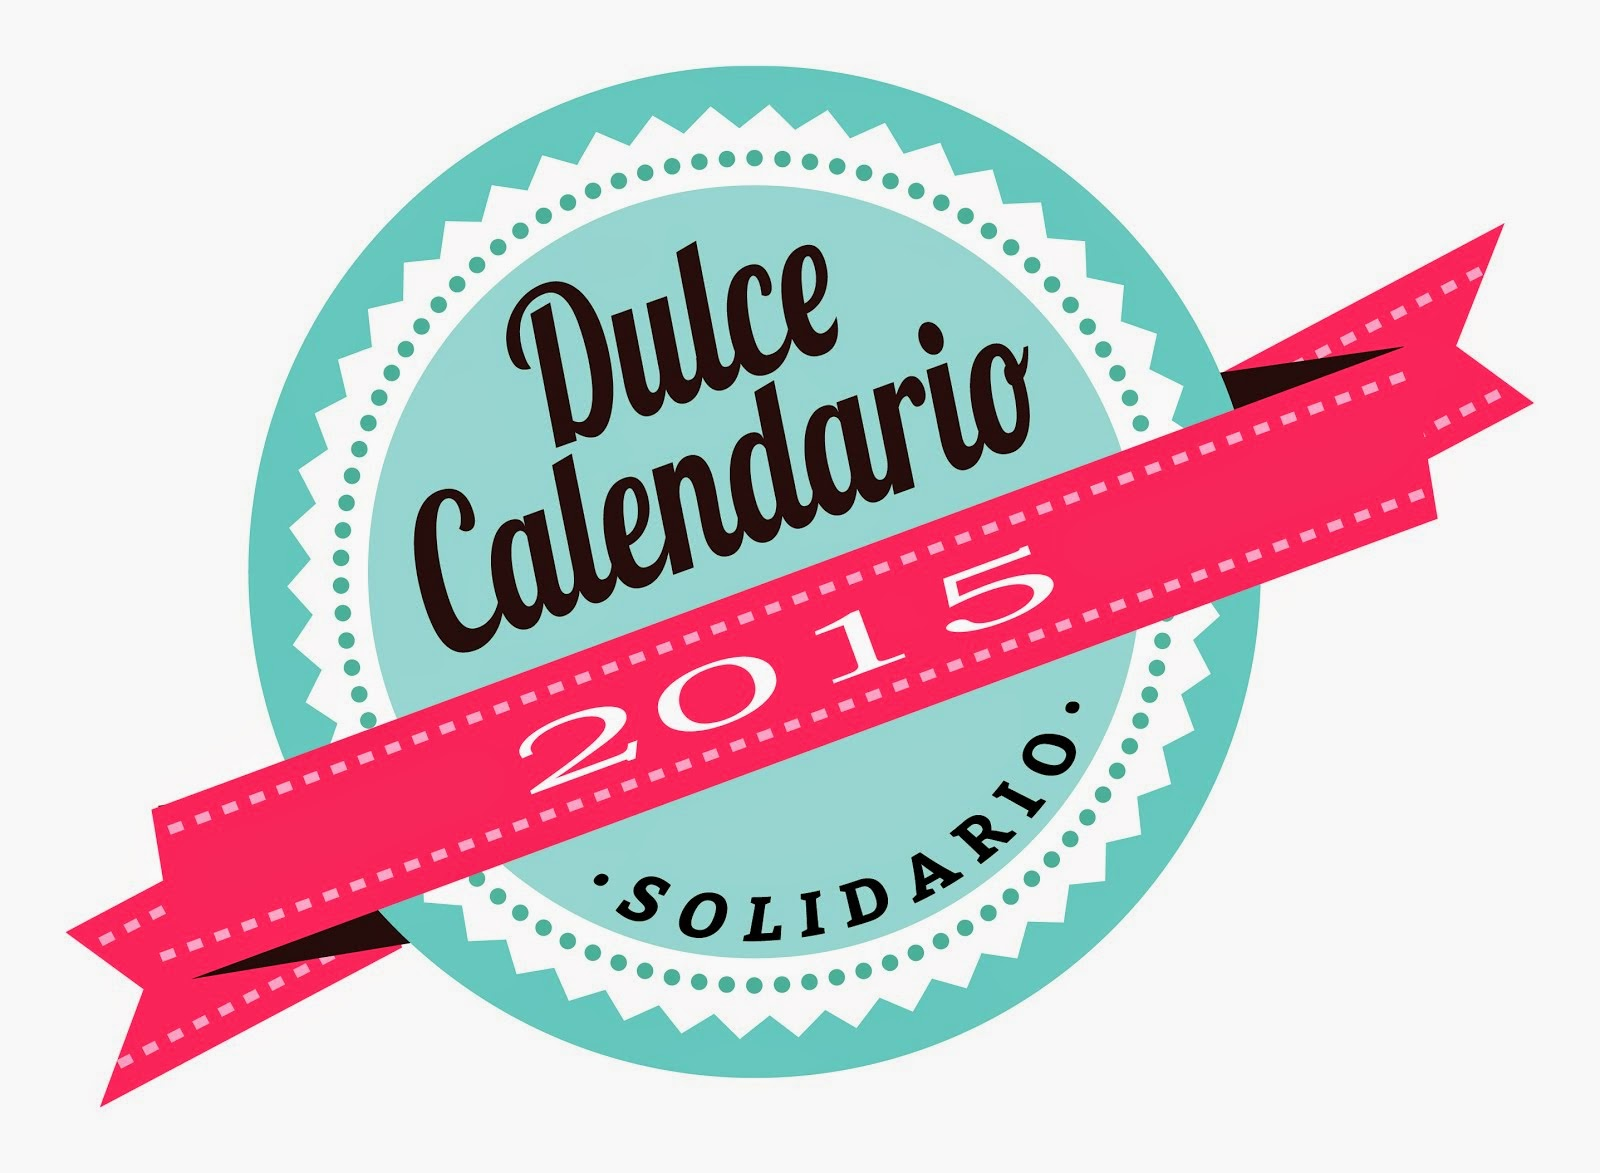 Dulce Calendario Solidario 2015